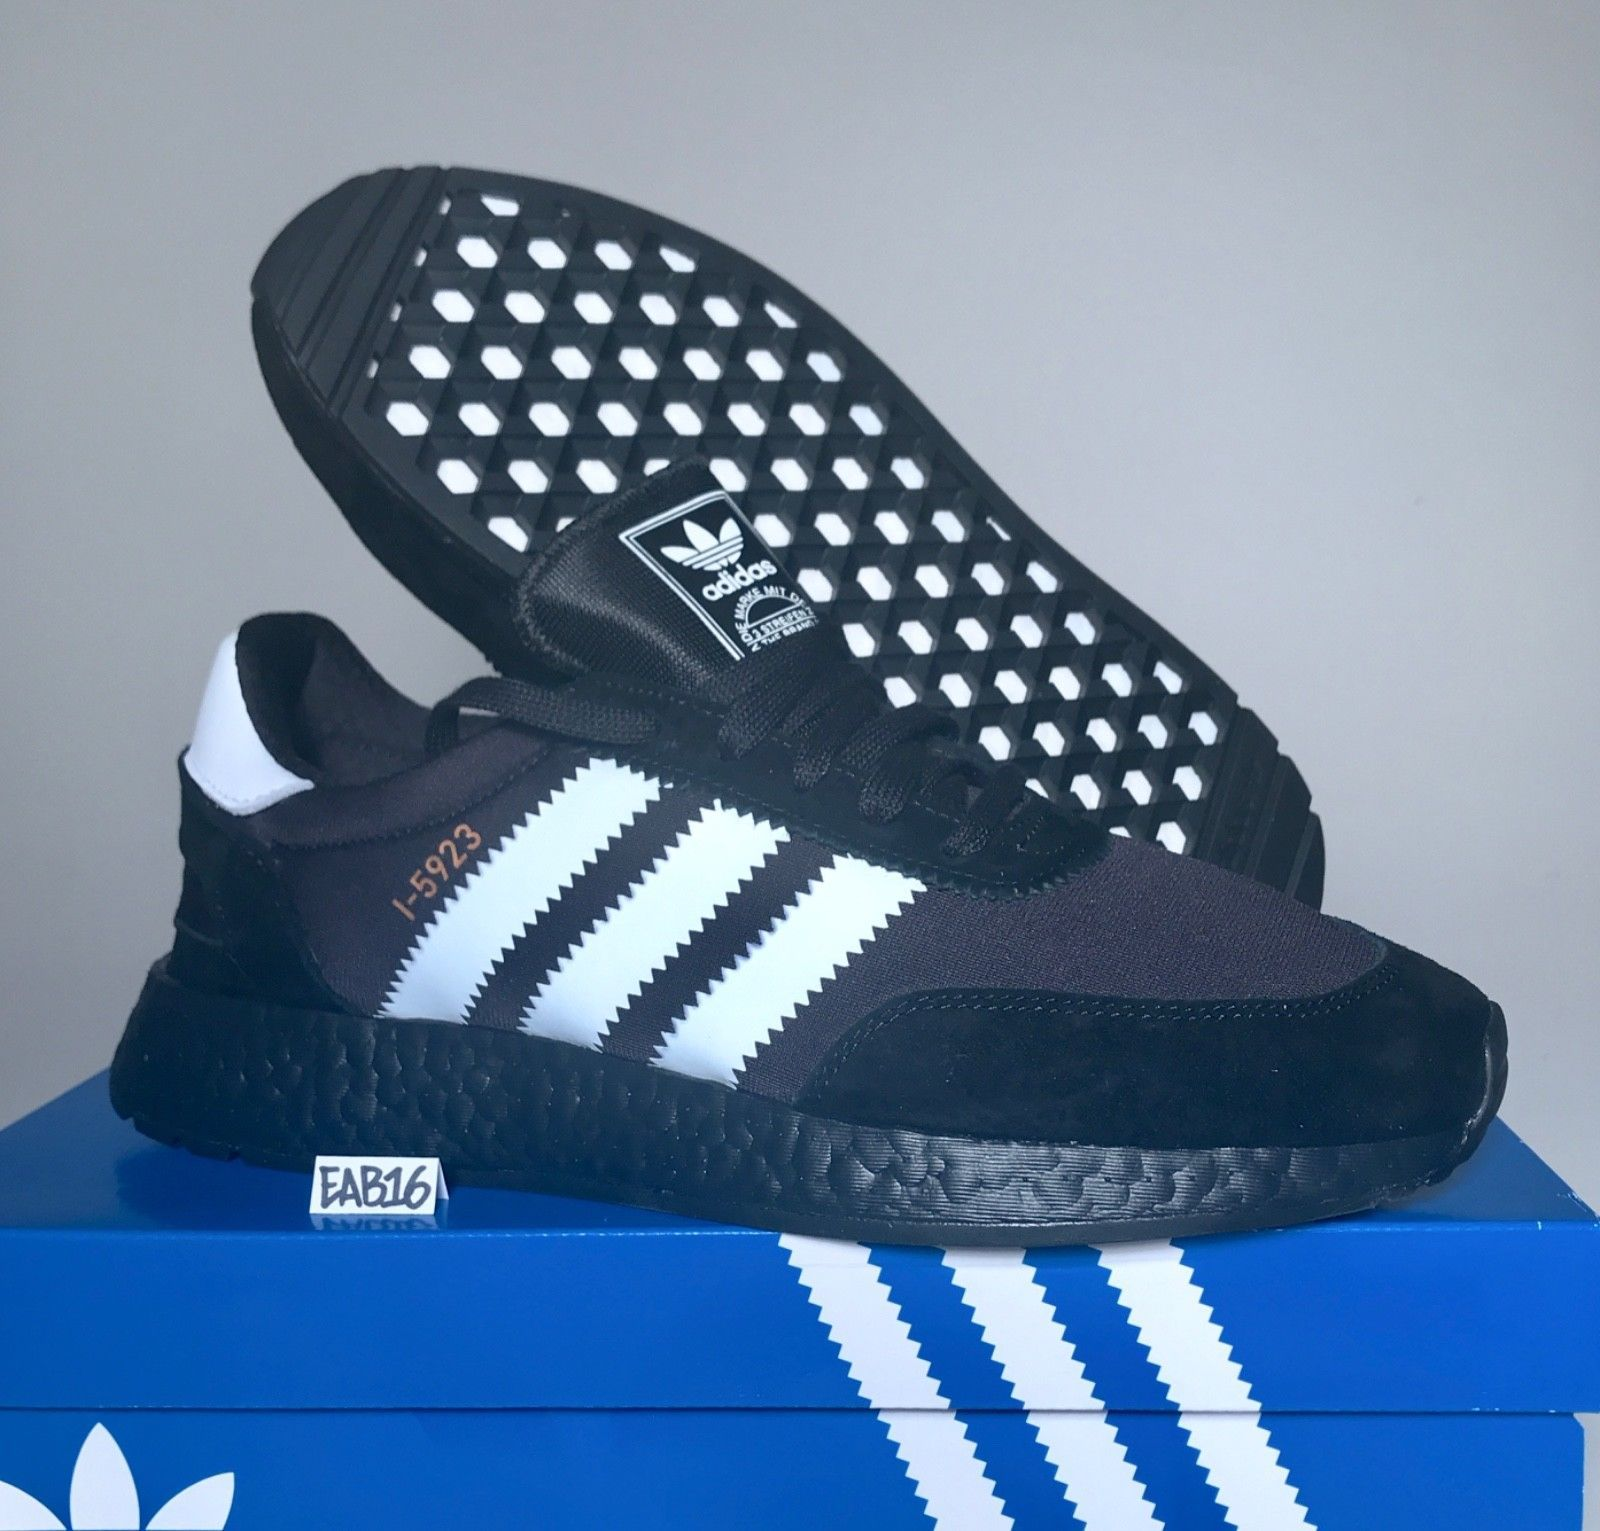 87885d1a27d Adidas Iniki Runner I-5923 Triple Core Black Boost and Running White Size  Cq2490